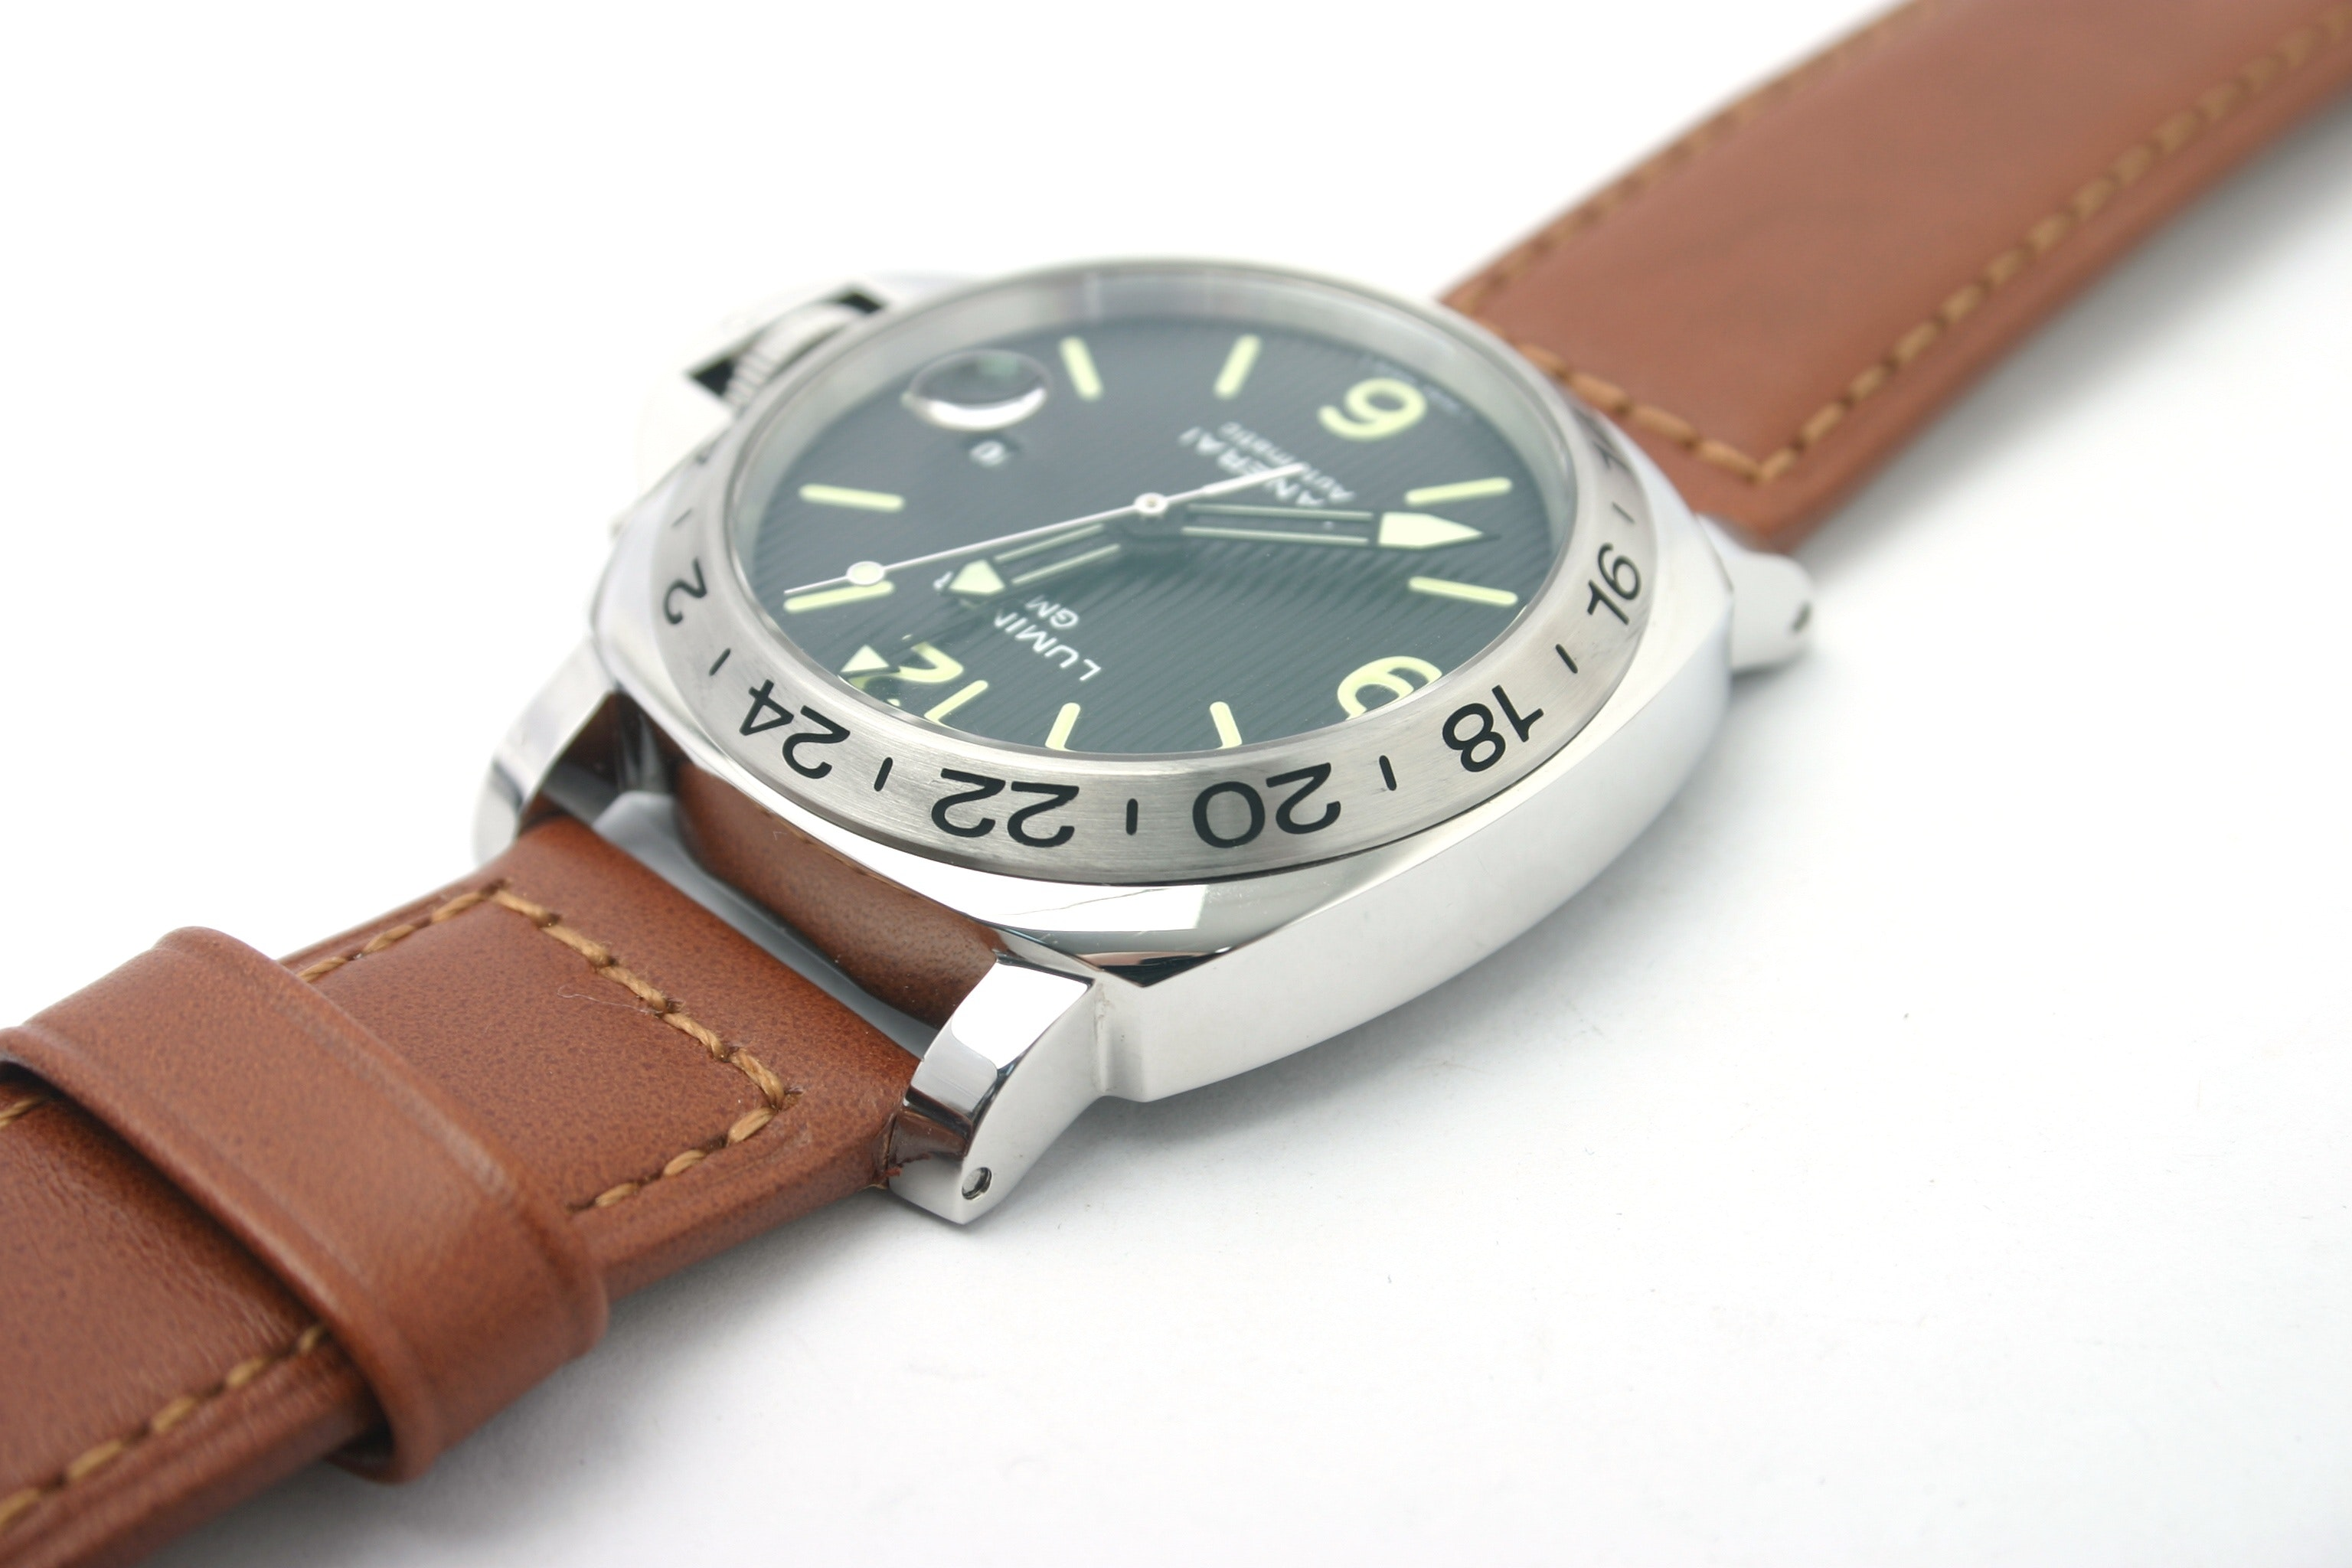 watches hands oro automatic acciaio ablogtowatch days luminor rosso mm panerai on pam submersible